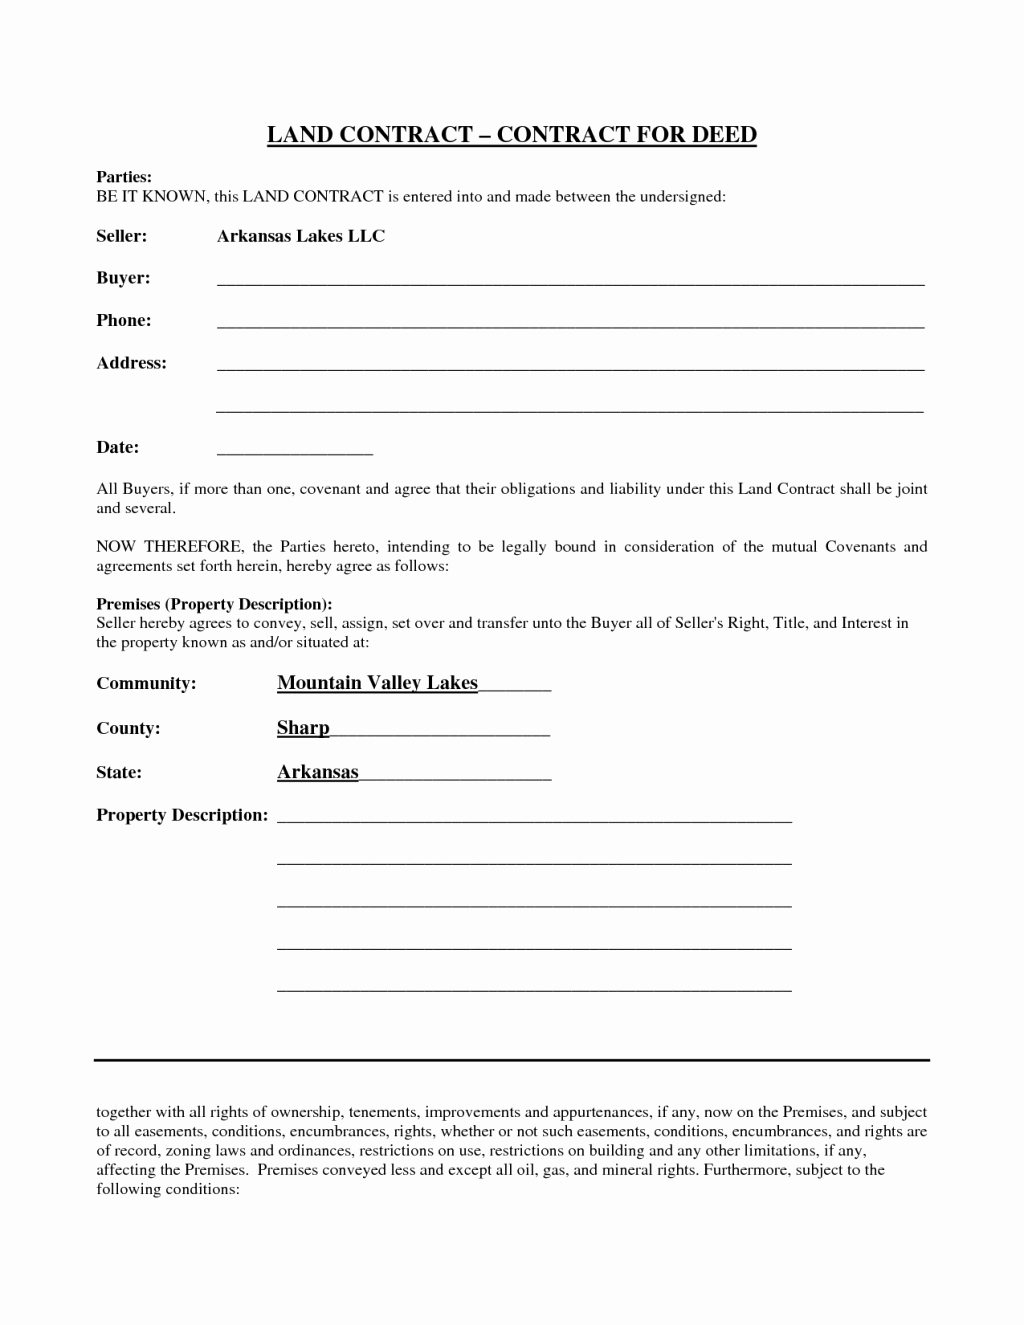 Simple Land Purchase Agreement form Best Of Simple yet Best Blank Land Contract form for Deed with